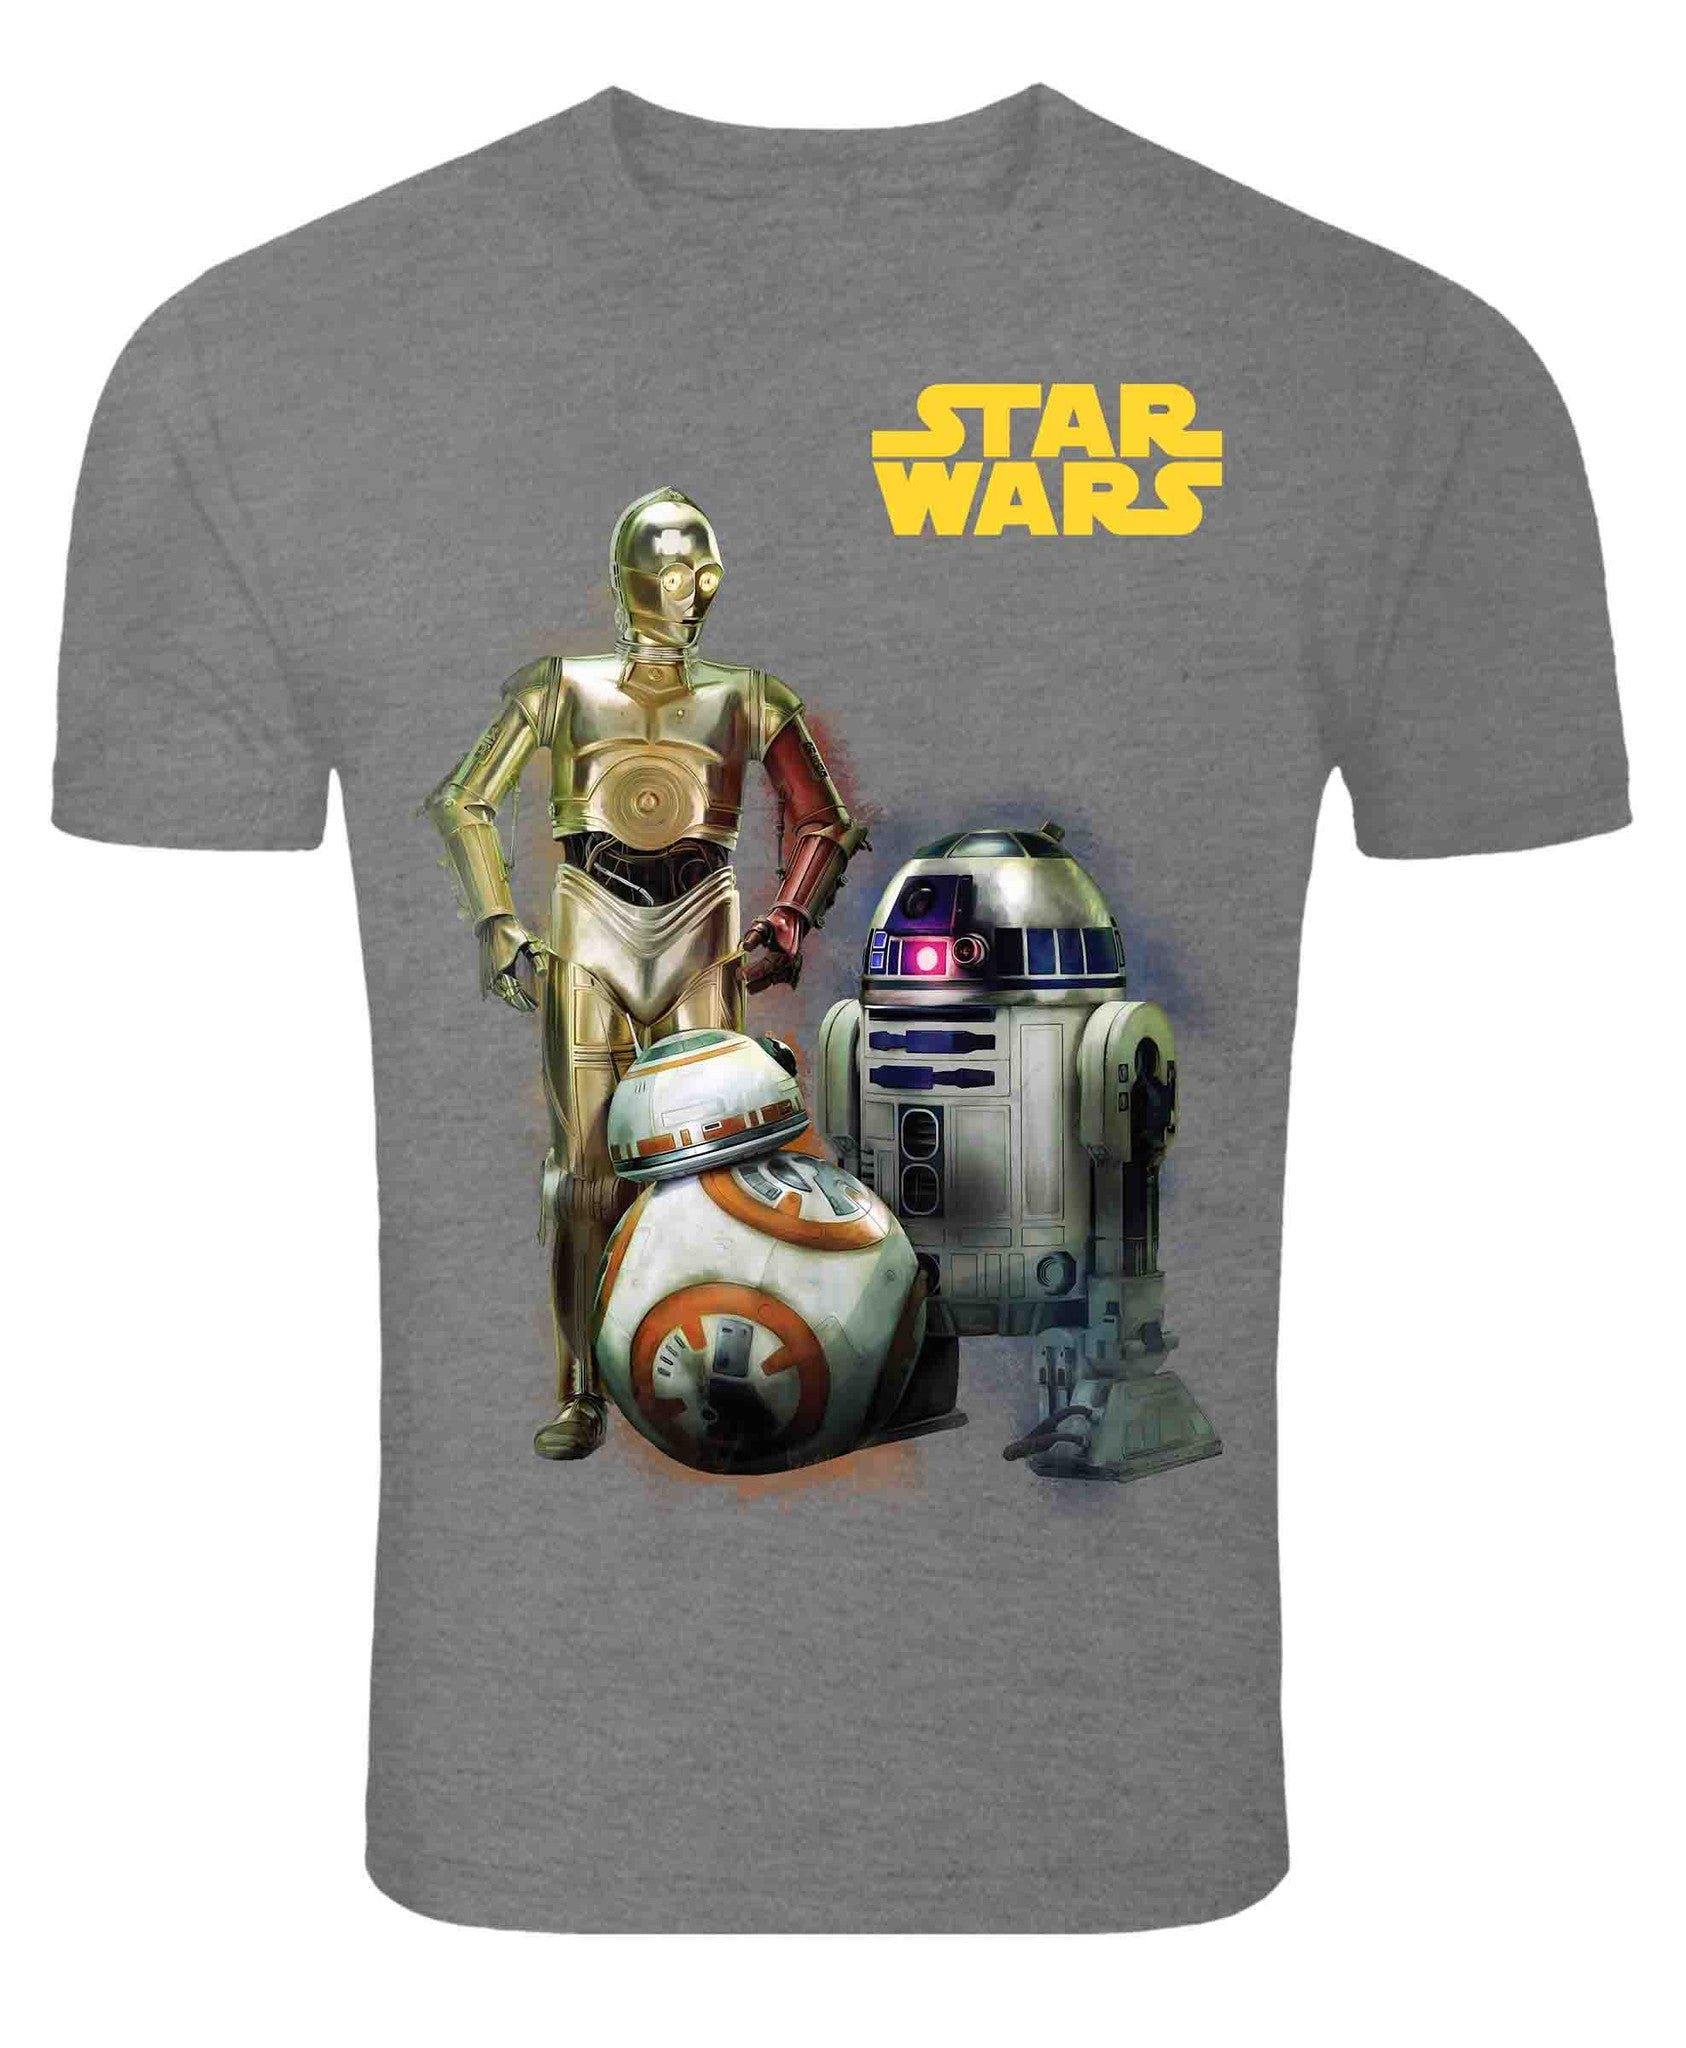 Star Wars Droids Without Grunge Effect Grey Melange T-Shirt-Frog- www.superherotoystore.com-T-Shirt